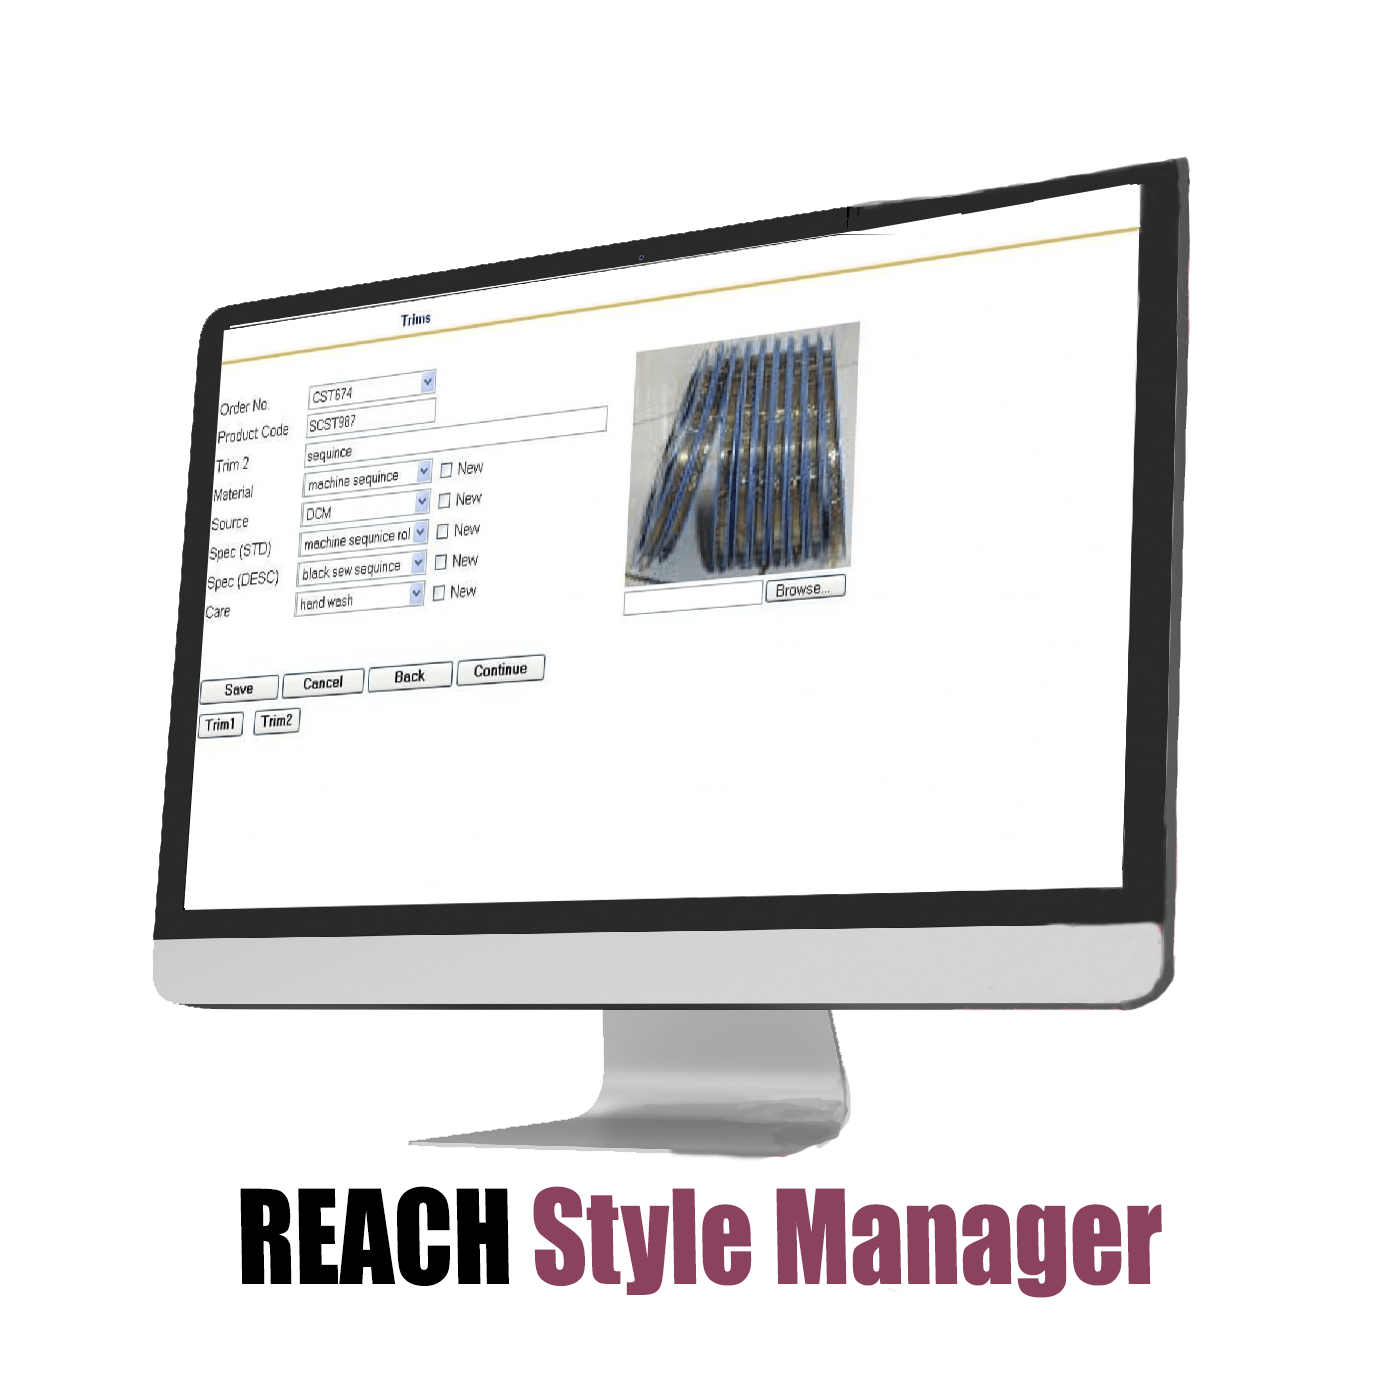 clothing-collection-management-software-6